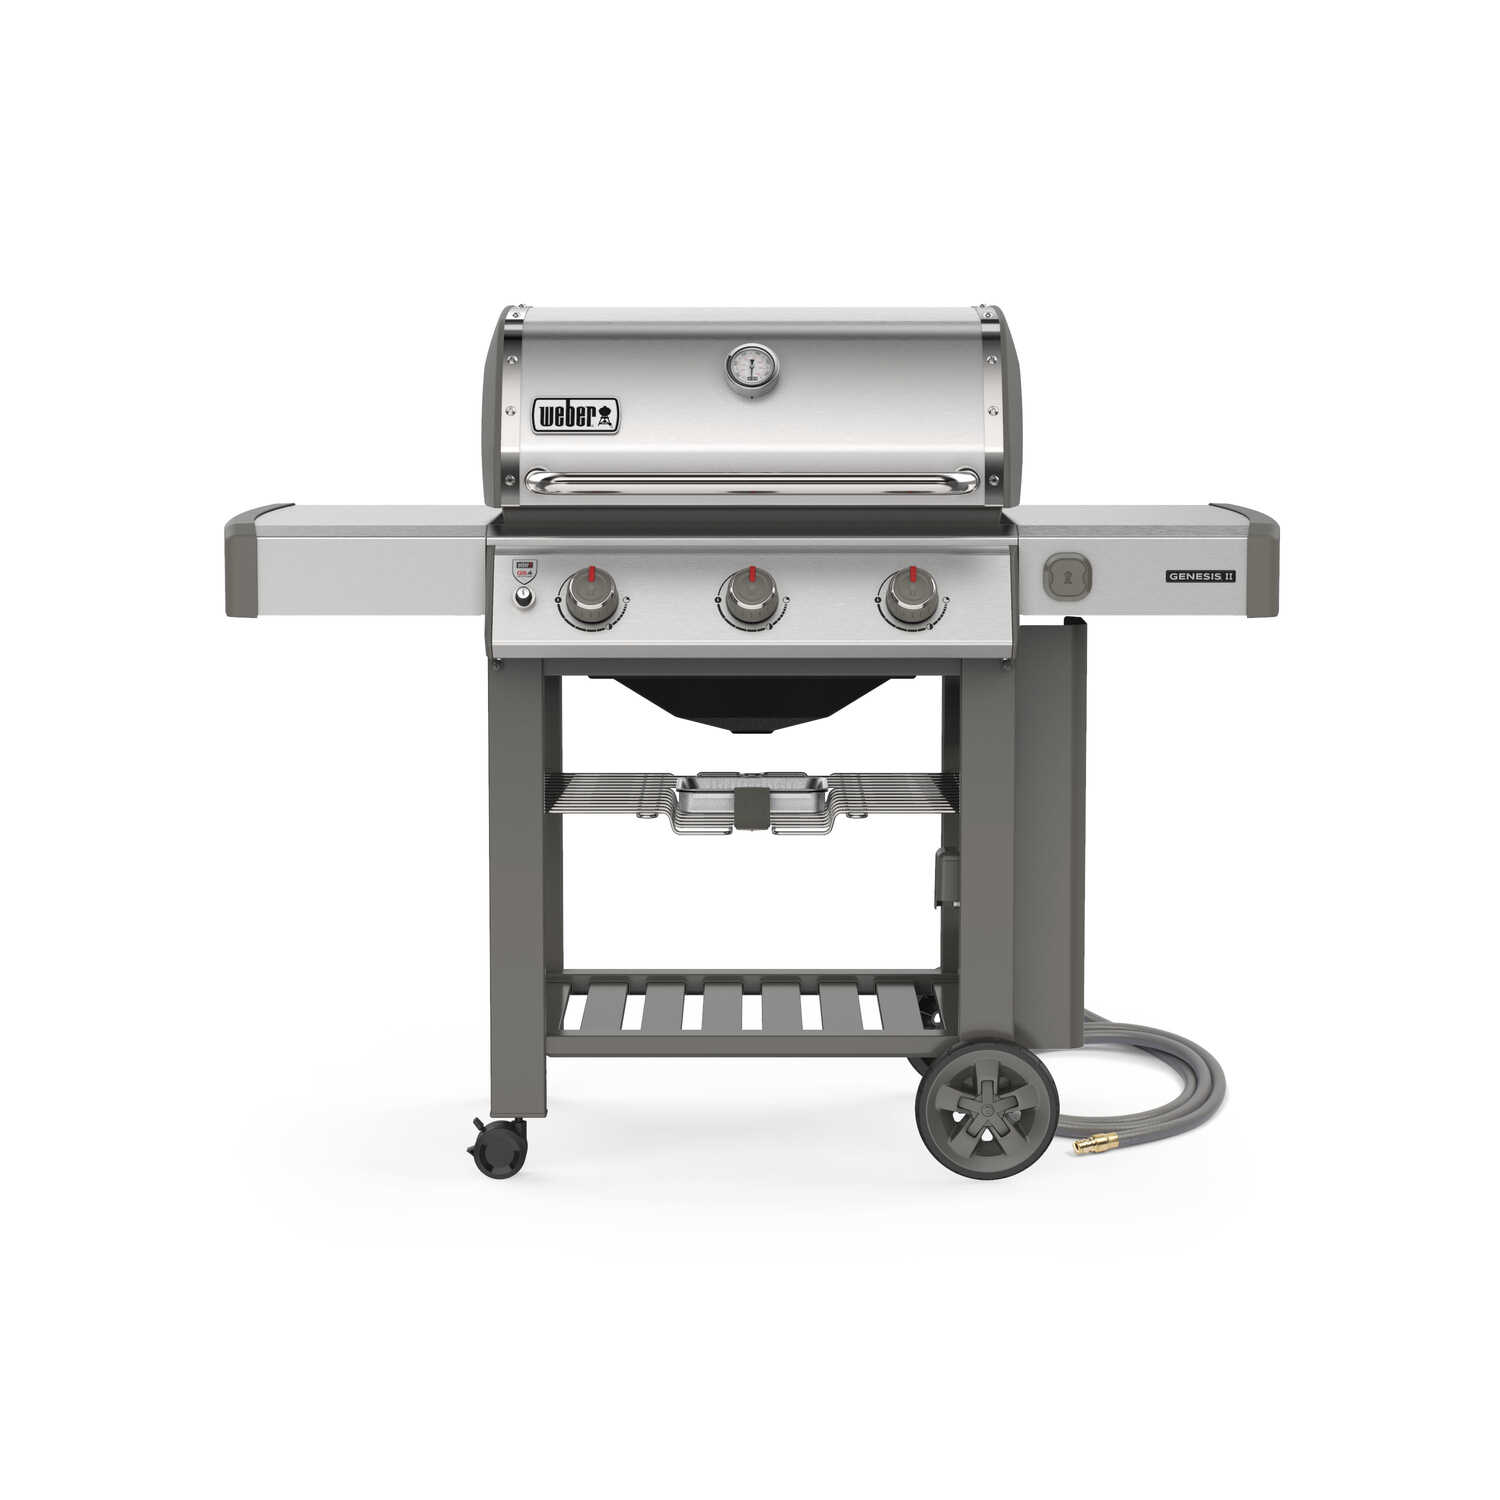 Weber  Genesis II S-310  3 burners Natural Gas  Grill  Stainless Steel  39000 BTU